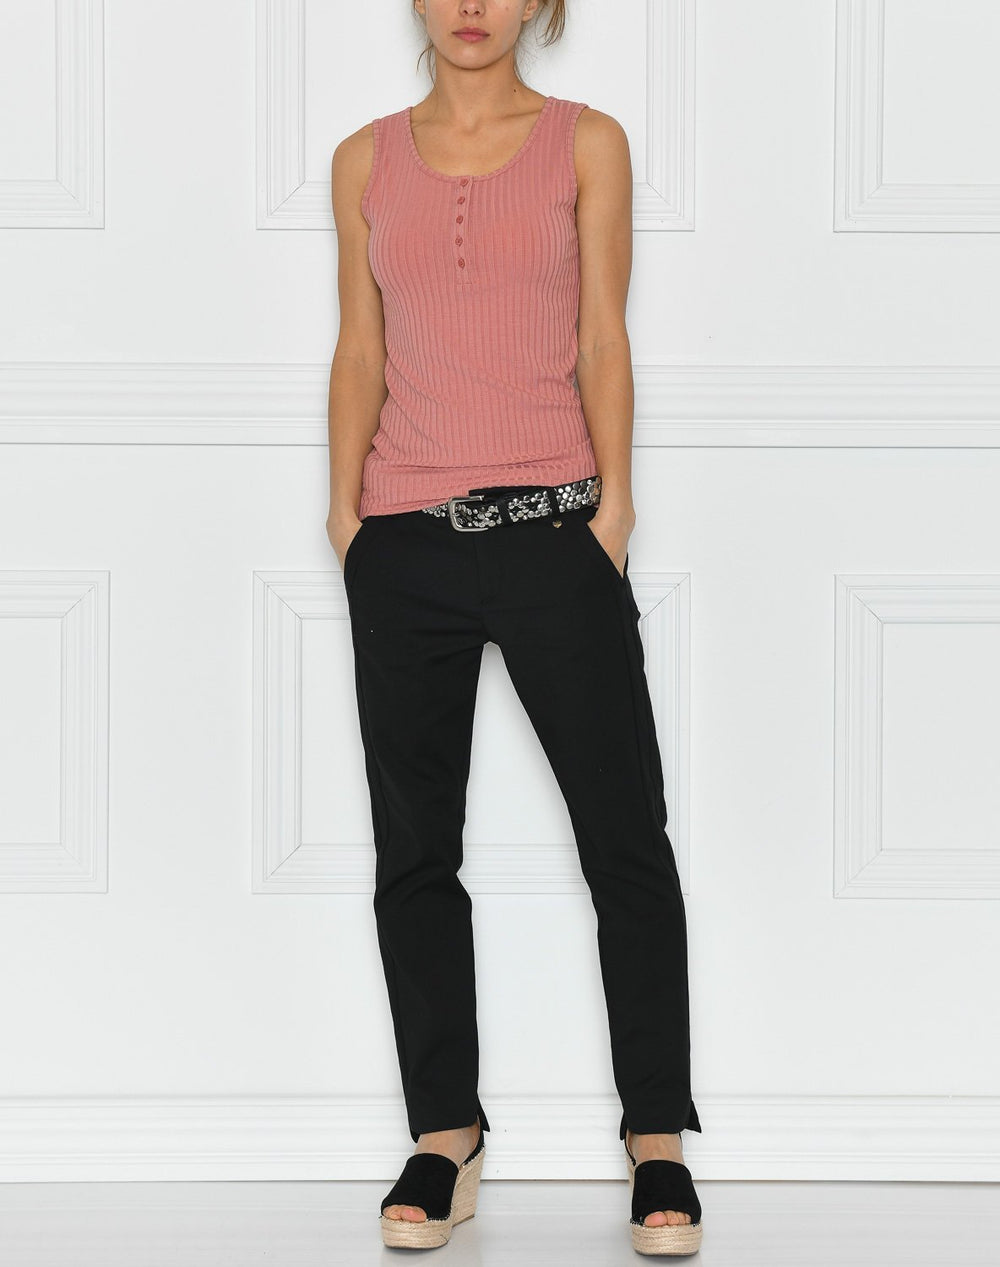 Kaffe KAtrudy tank top old rose - Online-Mode